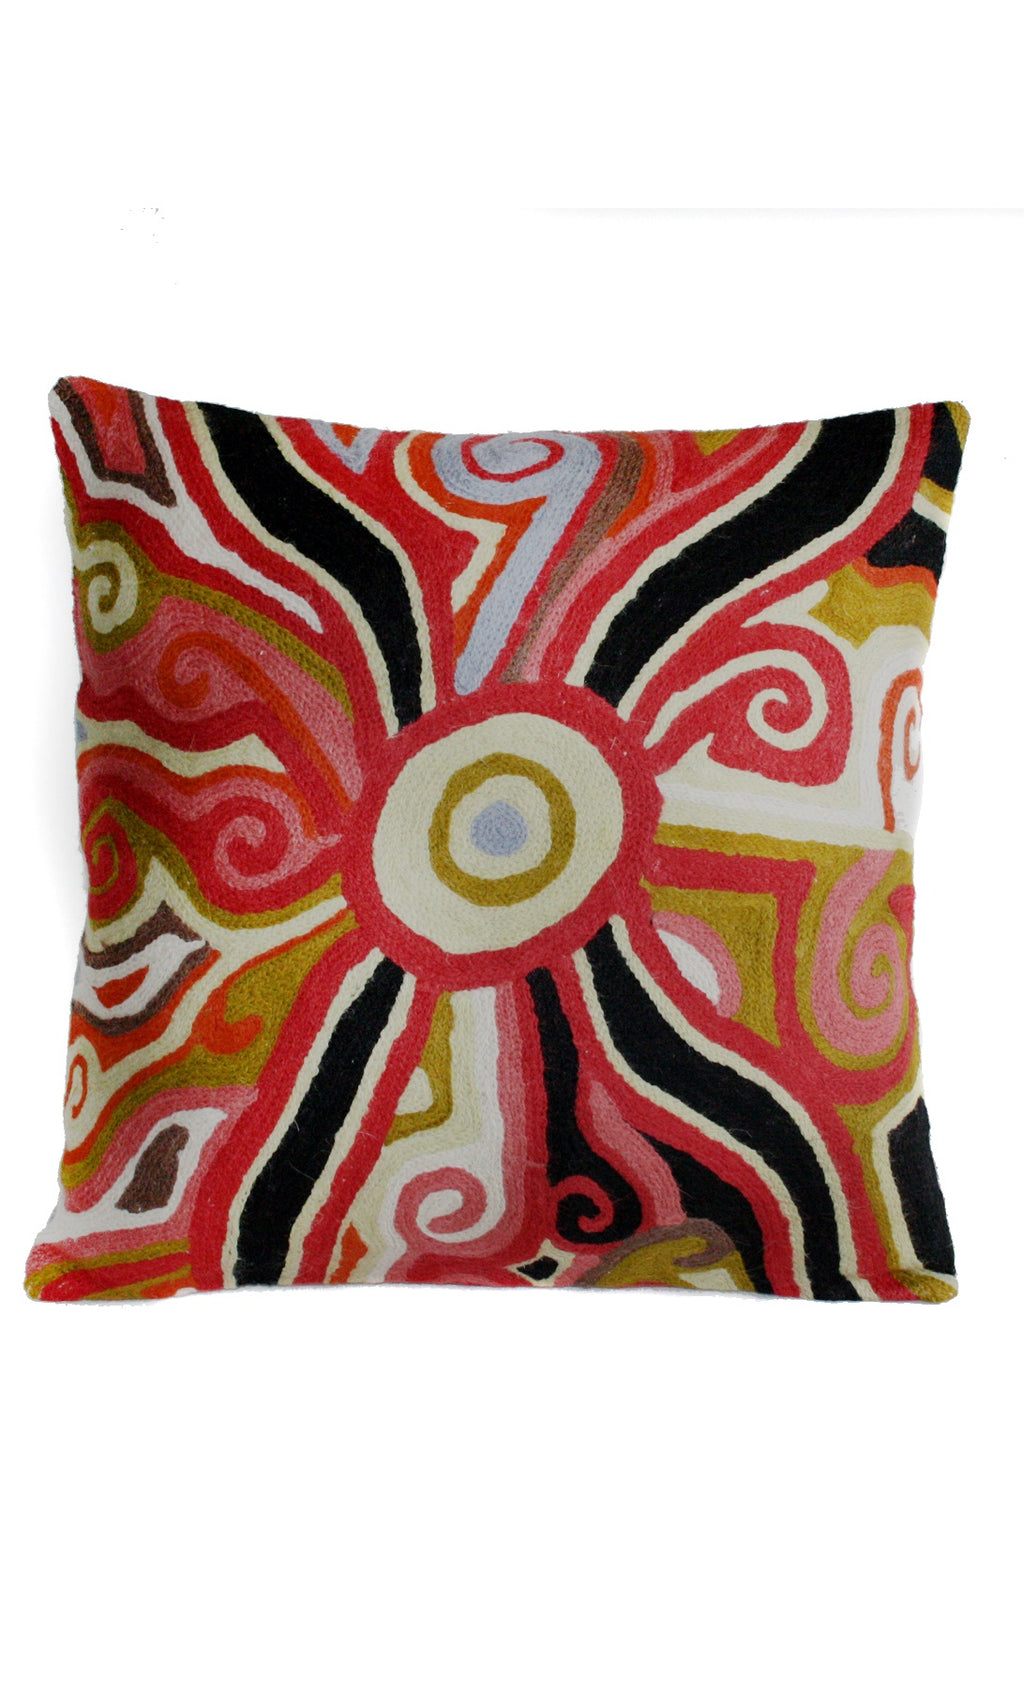 Aboriginal Art Cushion Cover by Mona Mitakiki